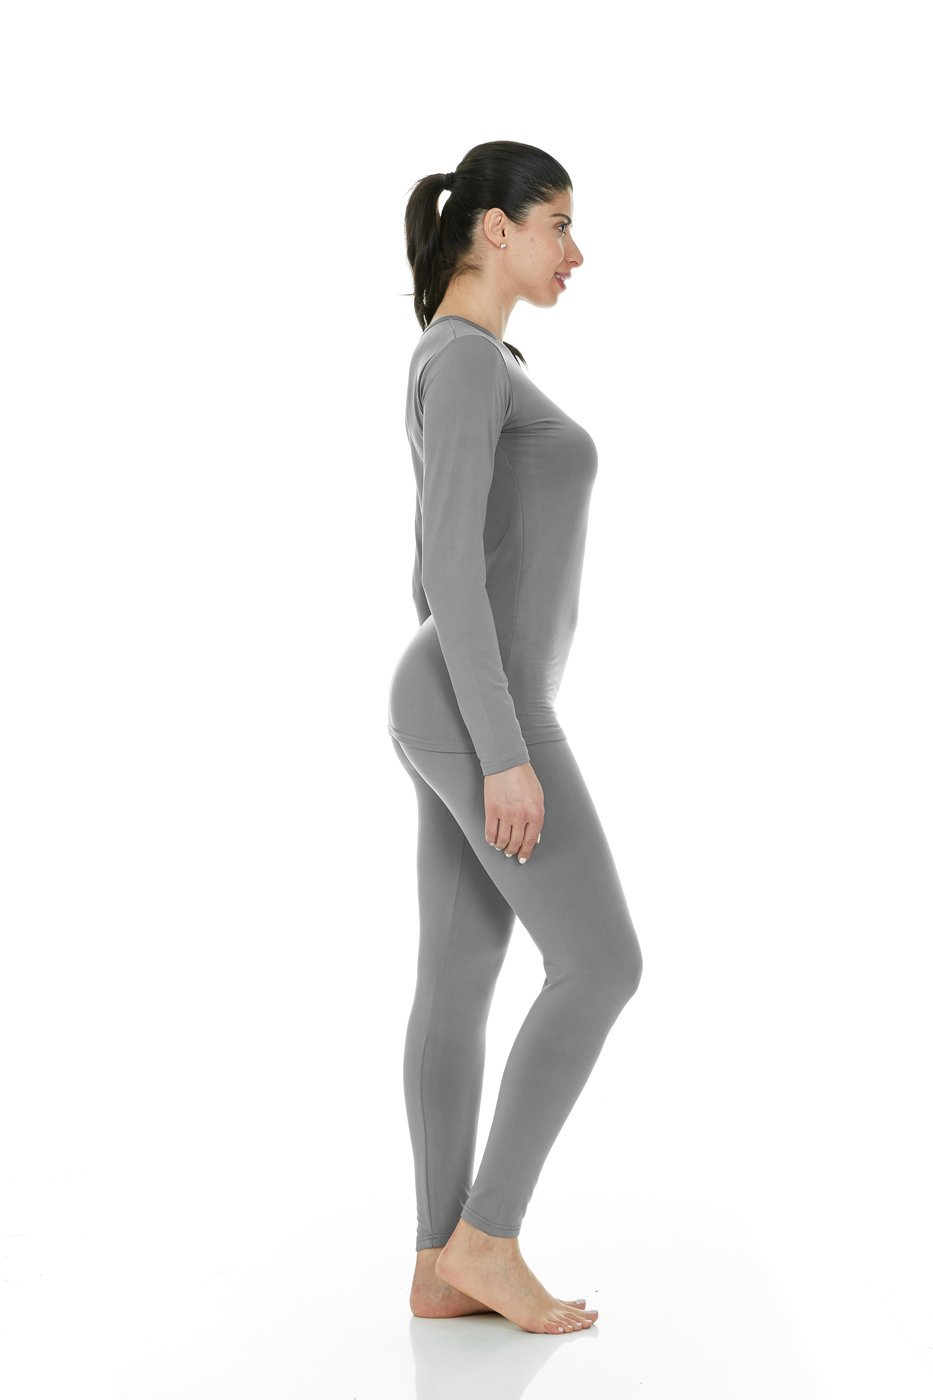 30817d2e Thermajane Women's Ultra Soft Thermal Underwear Long Johns Set with Fleece  Lined (X-Large, Grey) - LYSB019X2NHKK-SPRTSEQIP < Sets < Clothing, ...